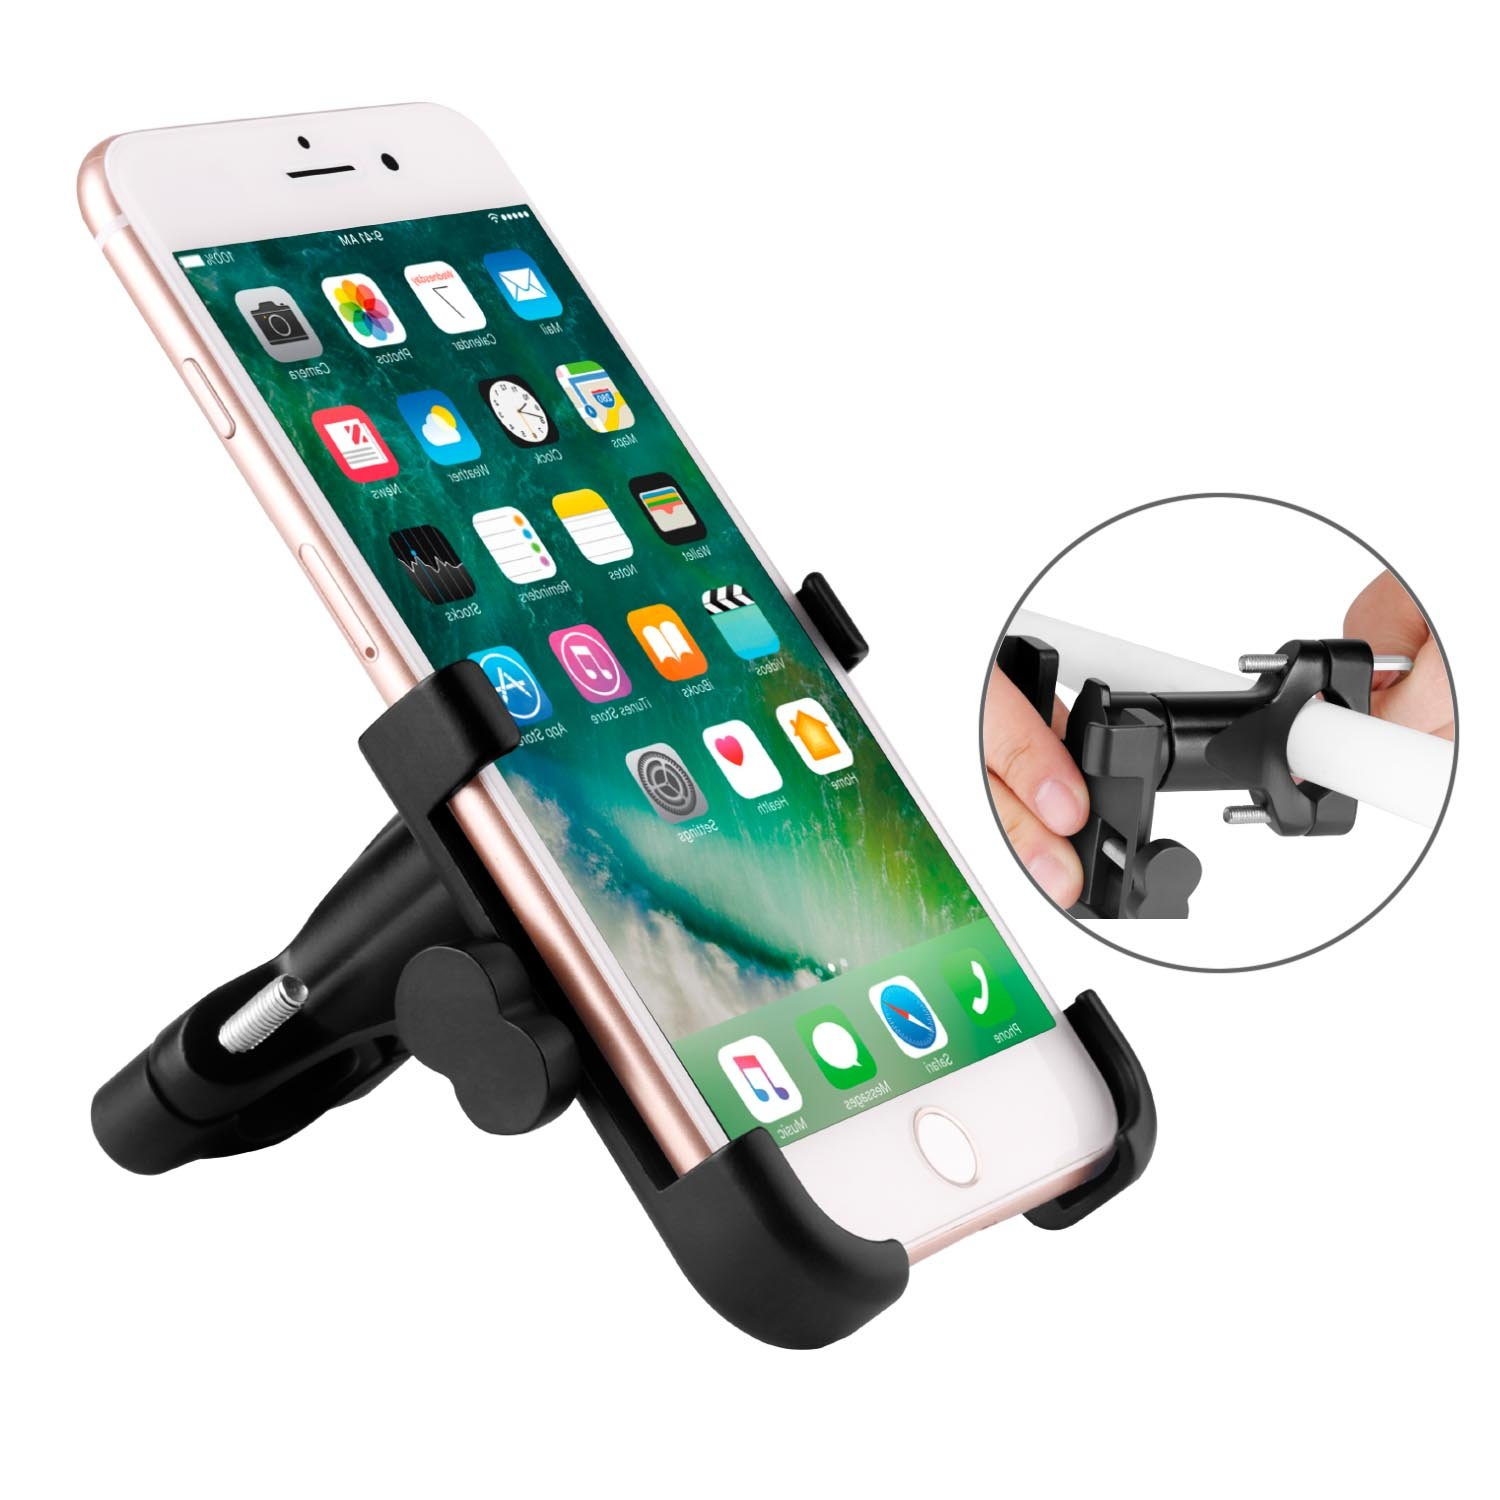 Venoro 8 S8//S8 Plus /& Other Mobile Smartphone Devices Black Samsung Galaxy S9//S9 Plus Bike Phone Mount XS X Universal Adjustable Aluminum Rolly Bicycle Handlebar Cell Phone Holder for iPhone XR